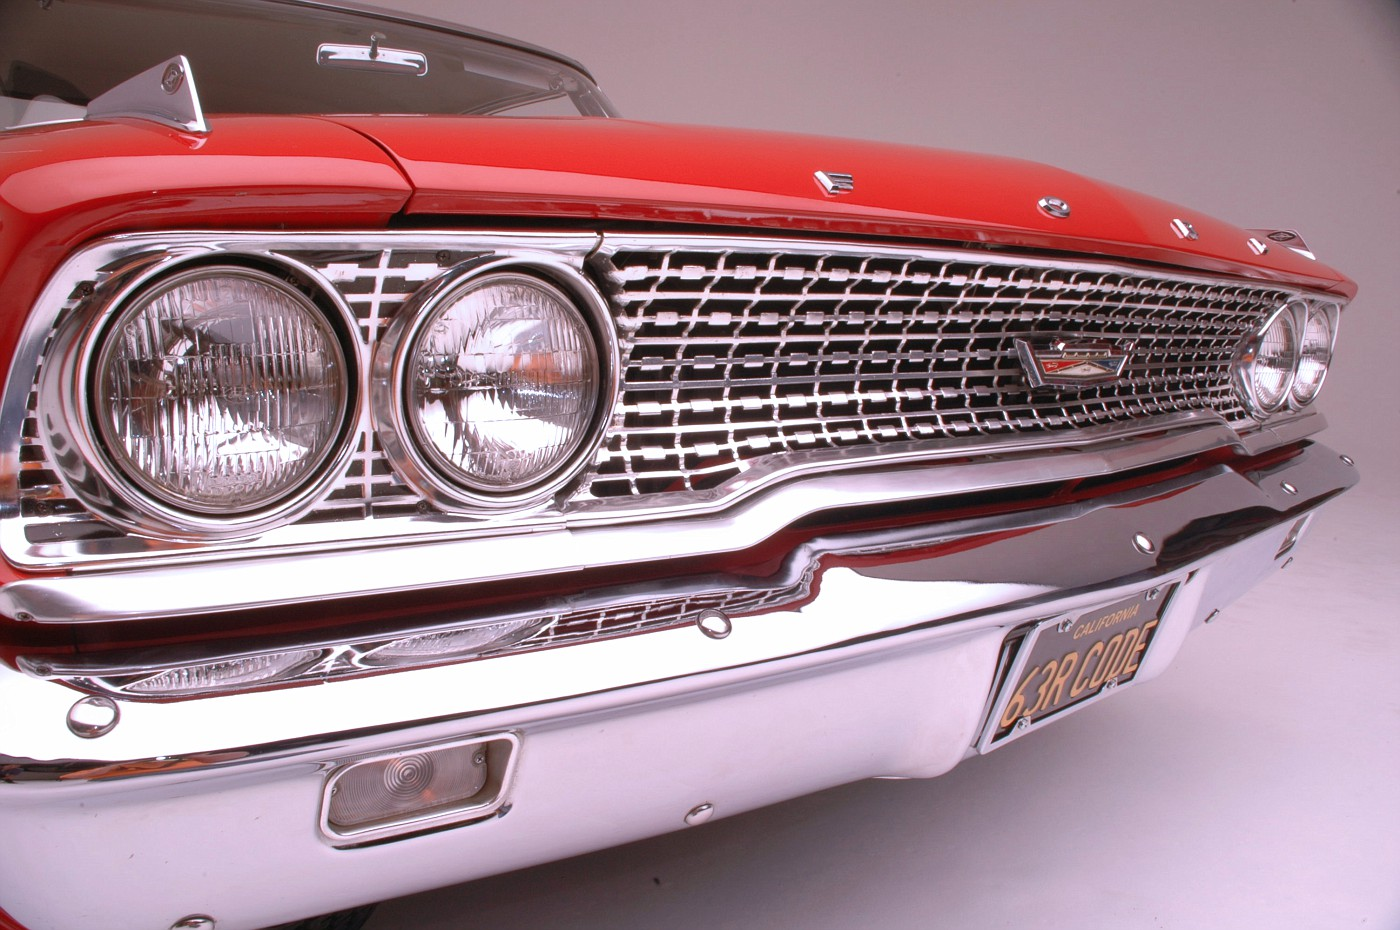 1963 ford galaxie 500 427 - 1963 Ford Galaxie 500 Xl 427 R Code Front Grille Detail 1